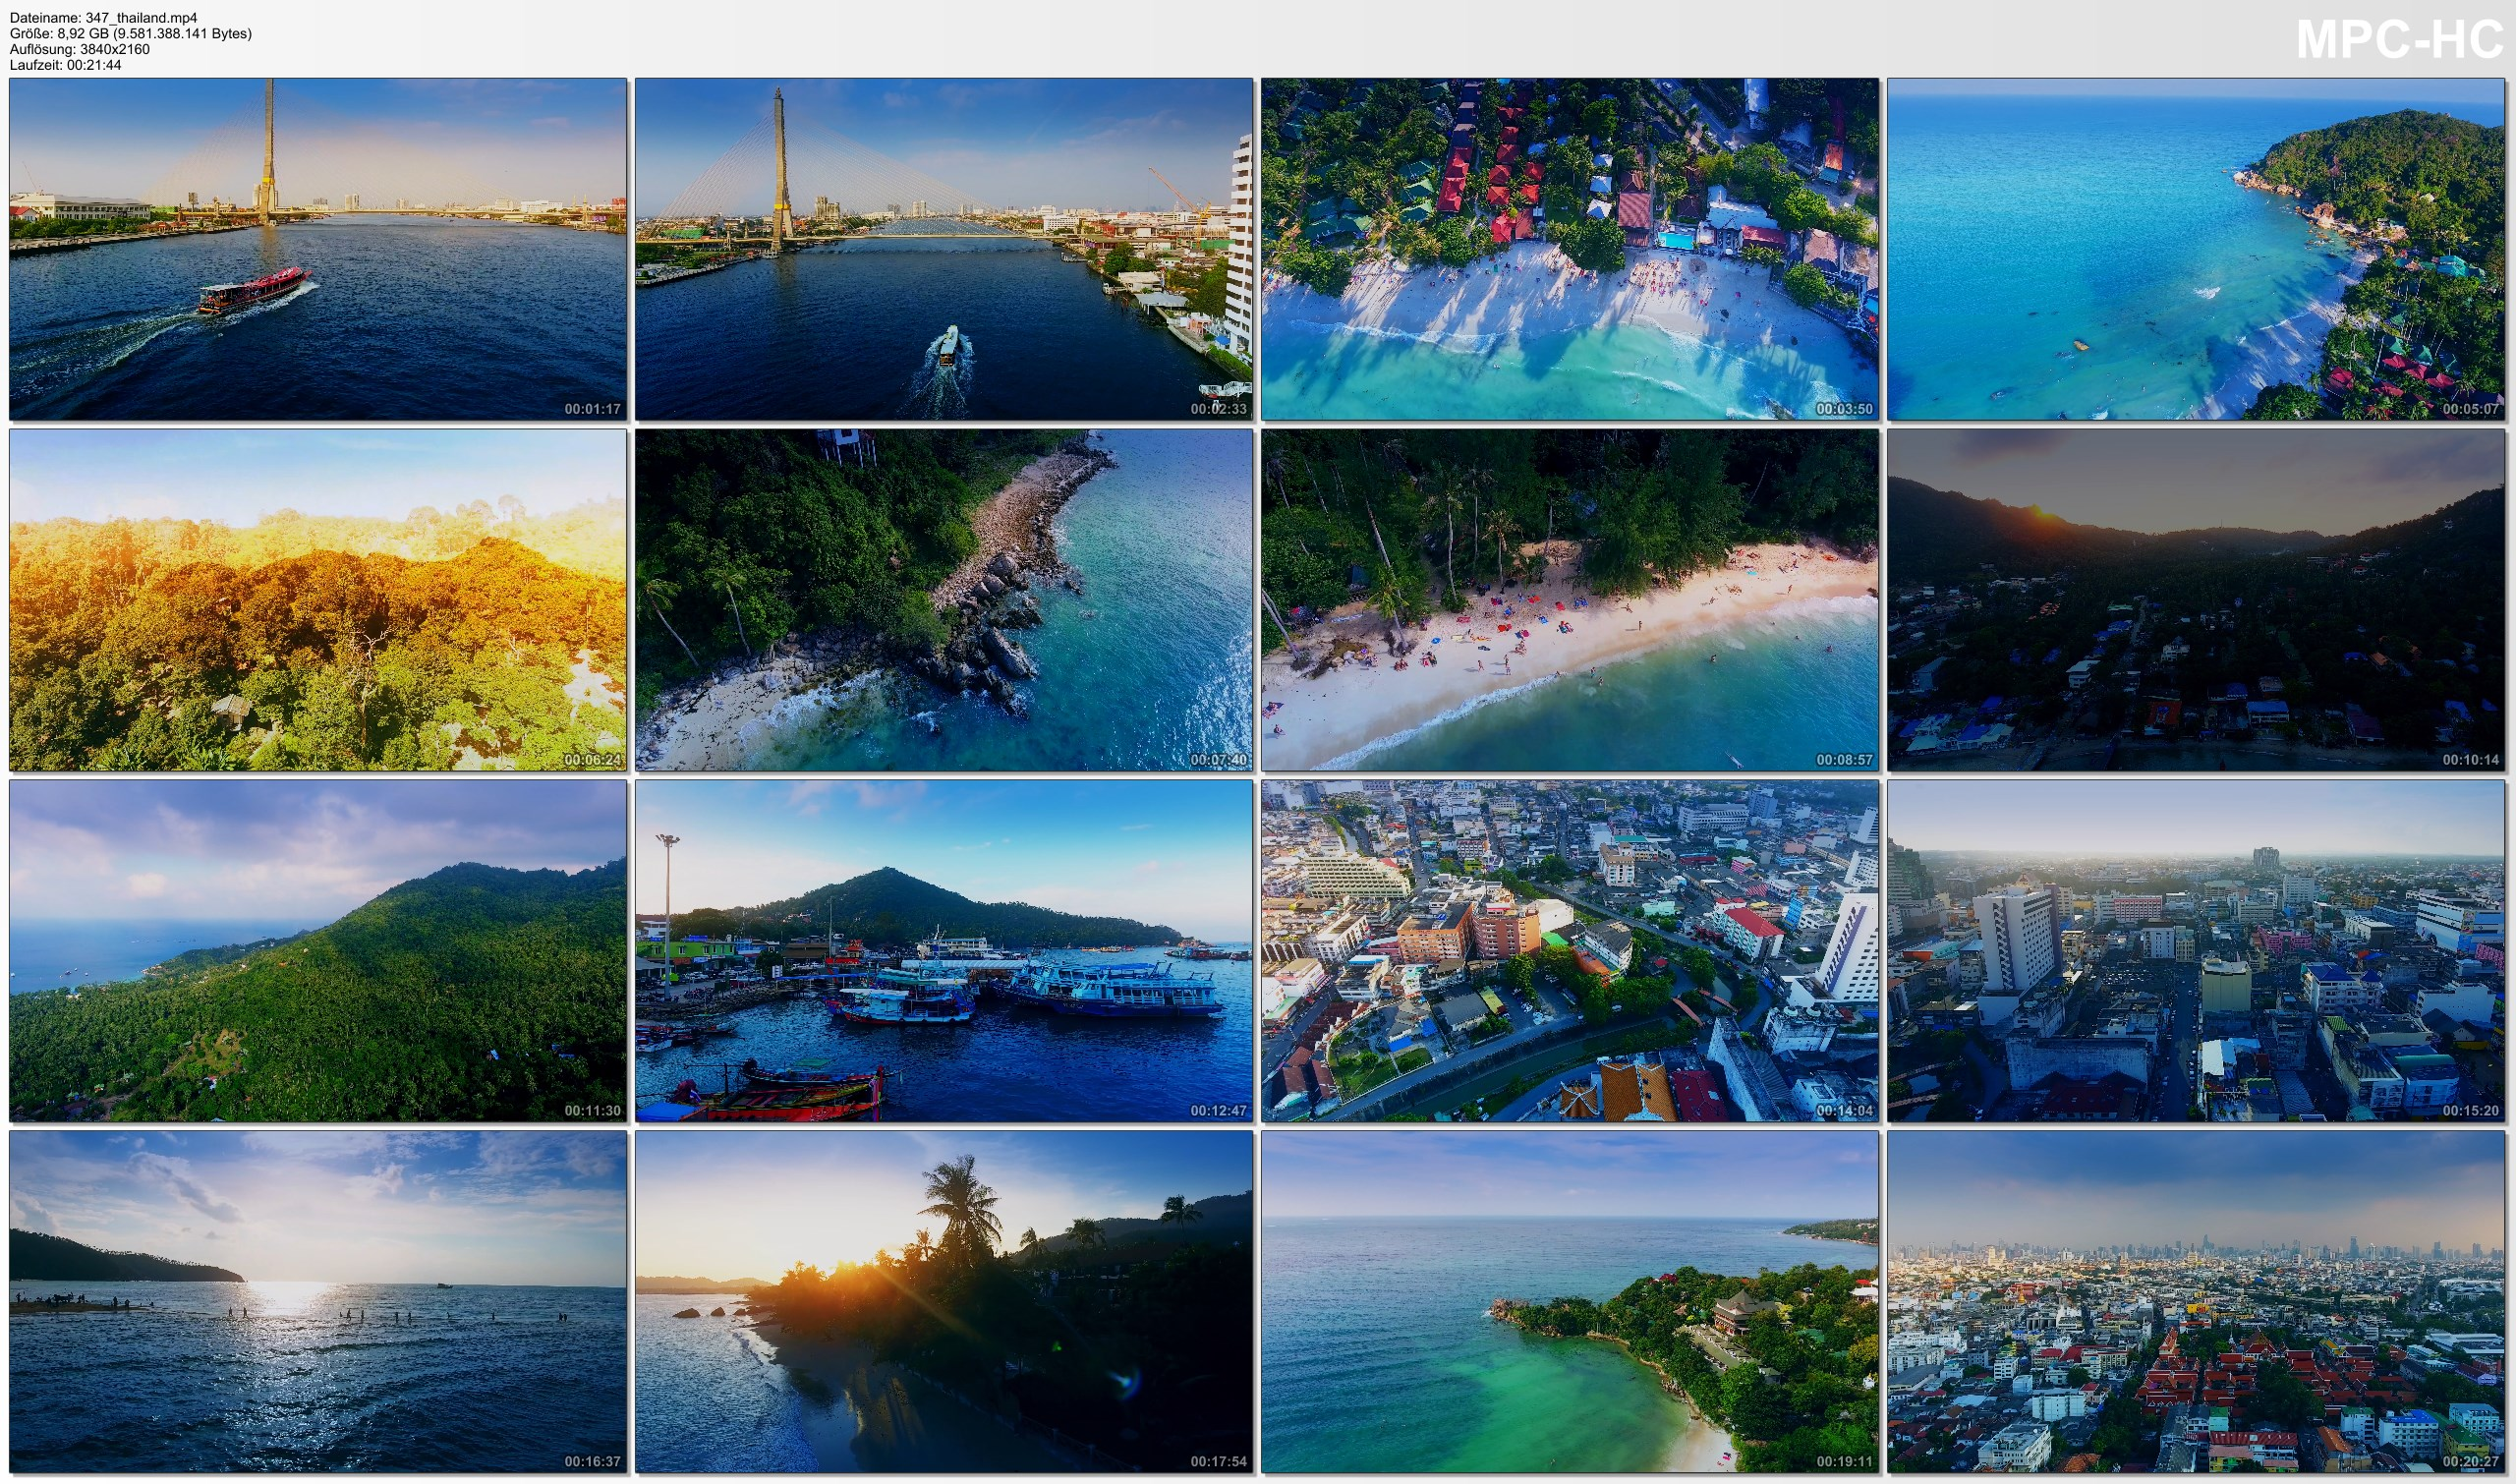 Drone Pictures from Video 【4K】Drone Footage | The Beauty of Thailand in 22 Minutes 2019 | Cinematic Aerial Bangkok Koh Phangan